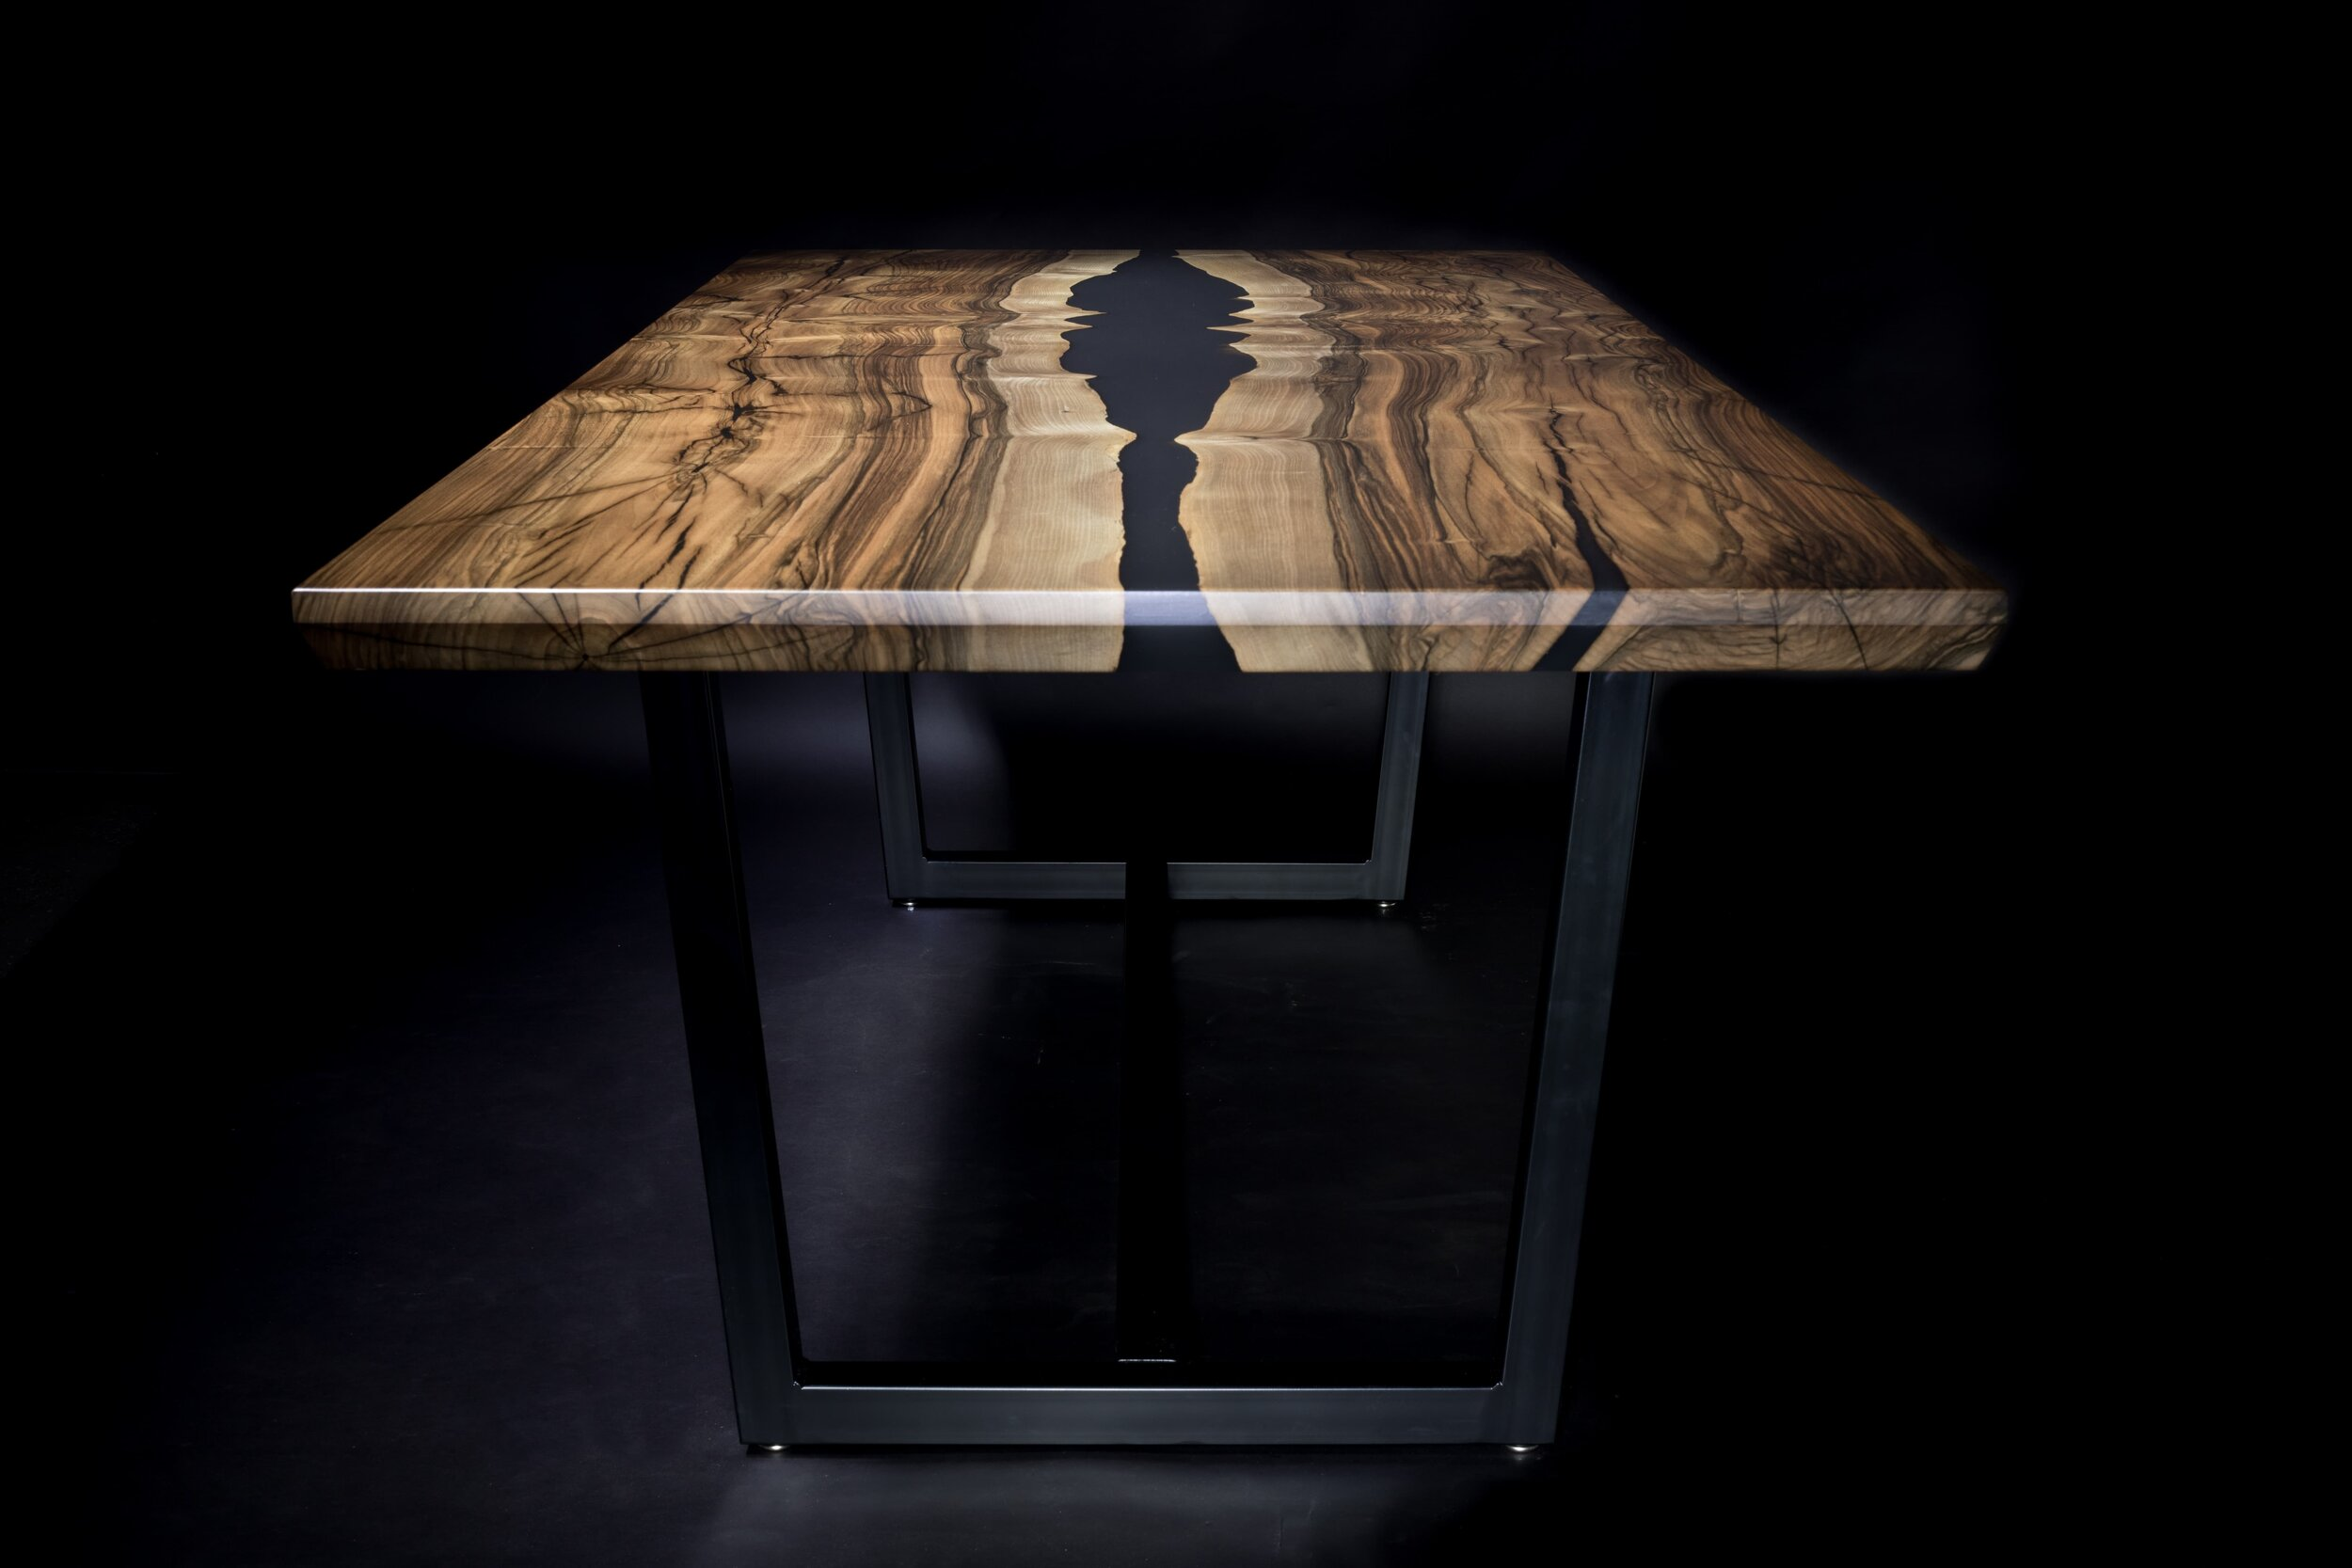 How To Make An Epoxy Resin Table Blacktail Studio